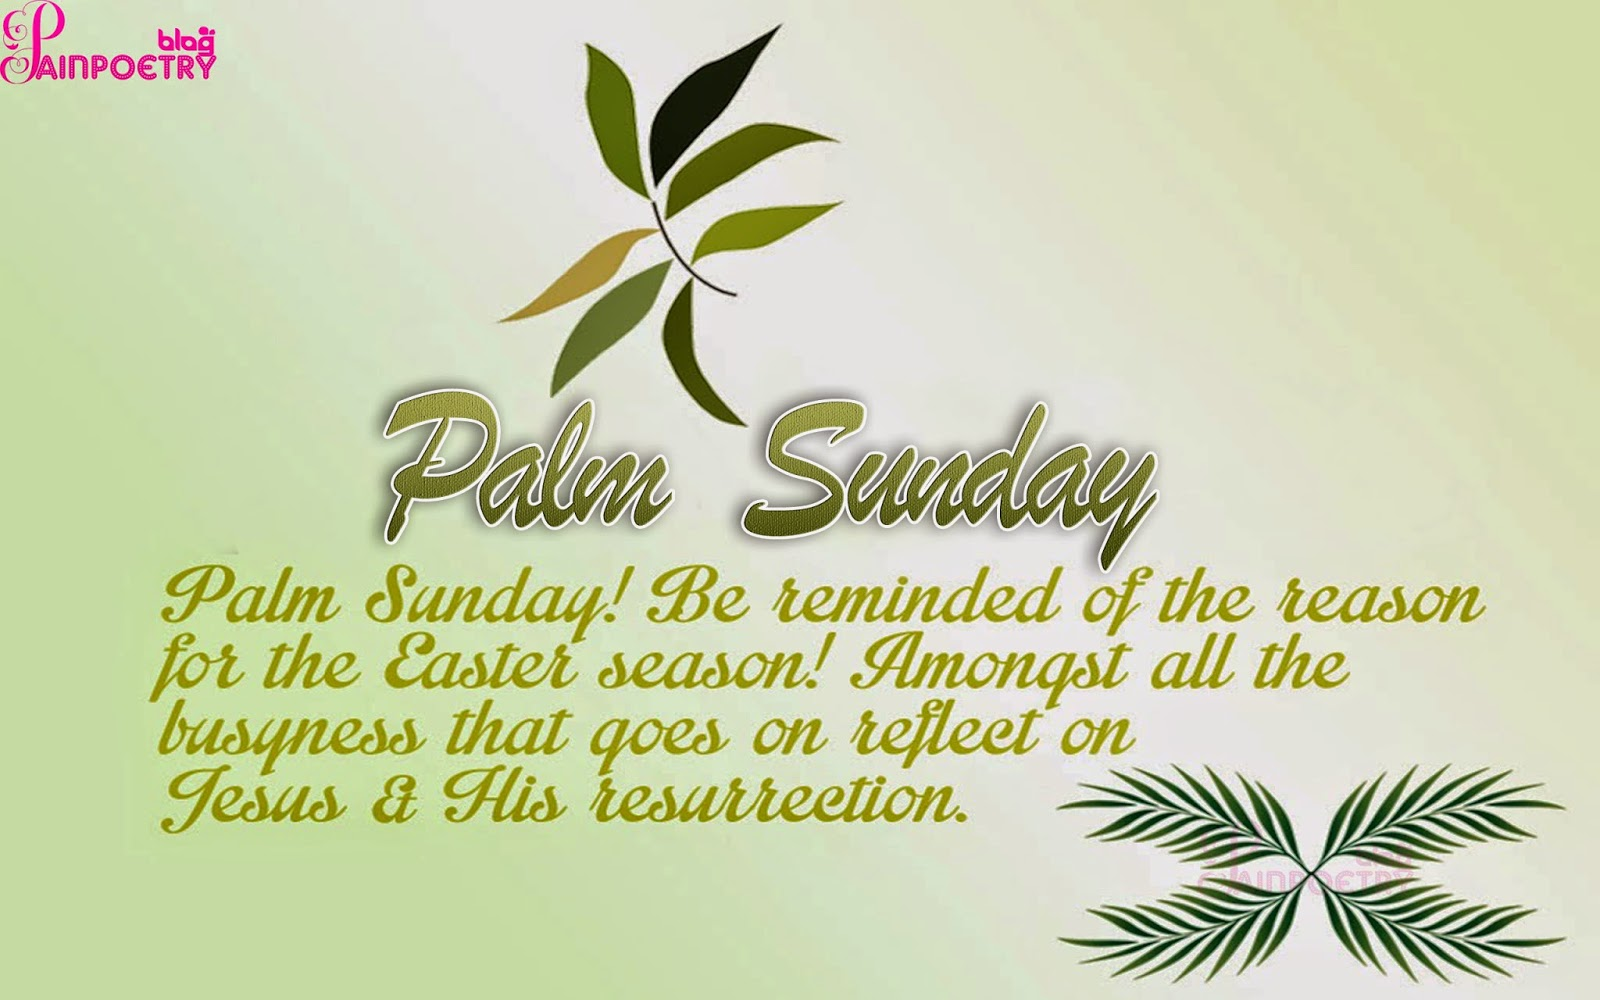 Palm-Sunday-Image-Photo-With-Quote-HD-Wide